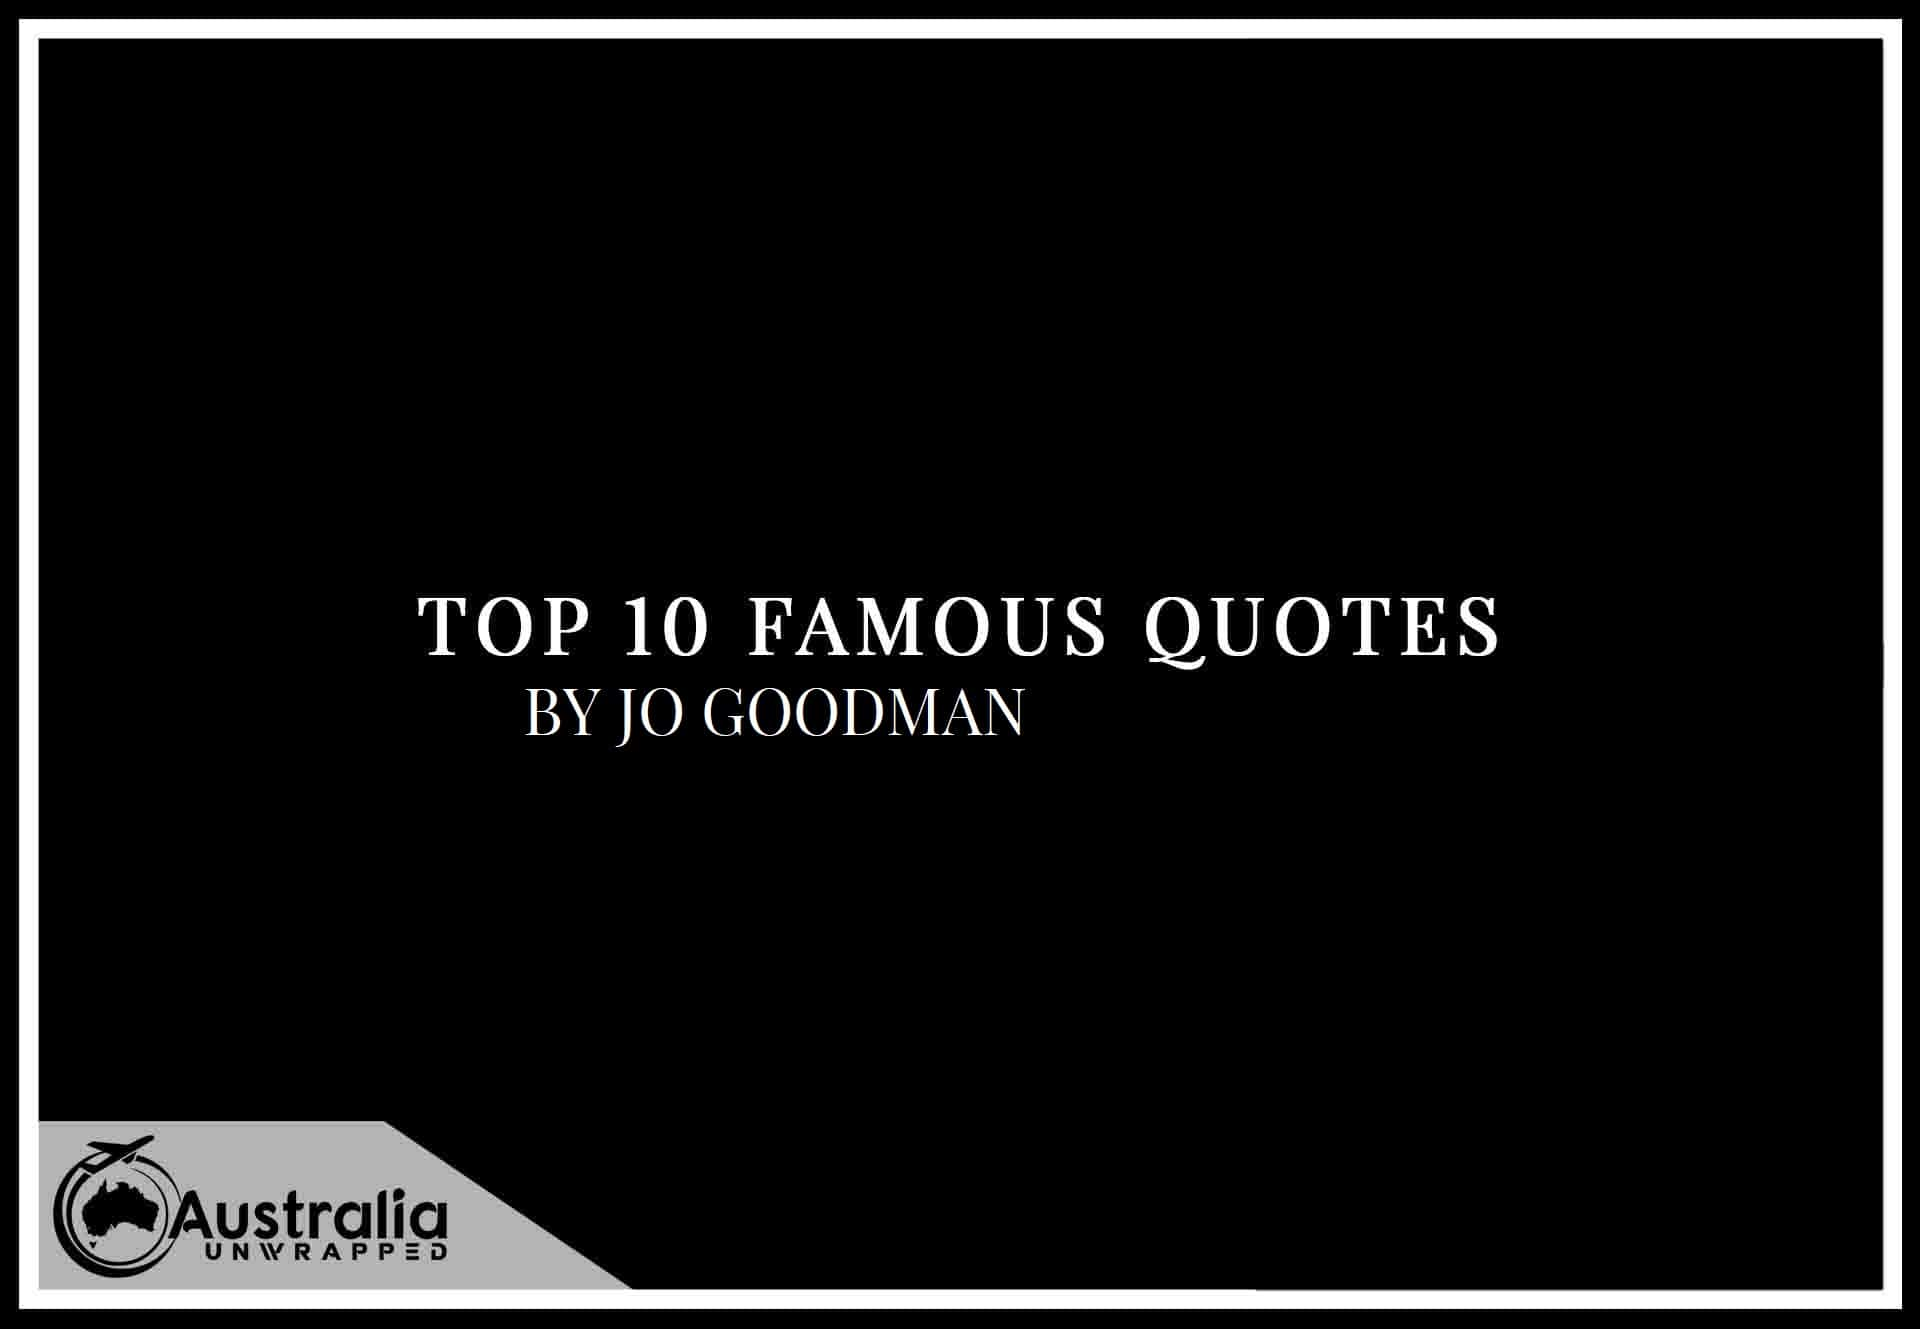 Top 10 Famous Quotes by Author Jo Goodman